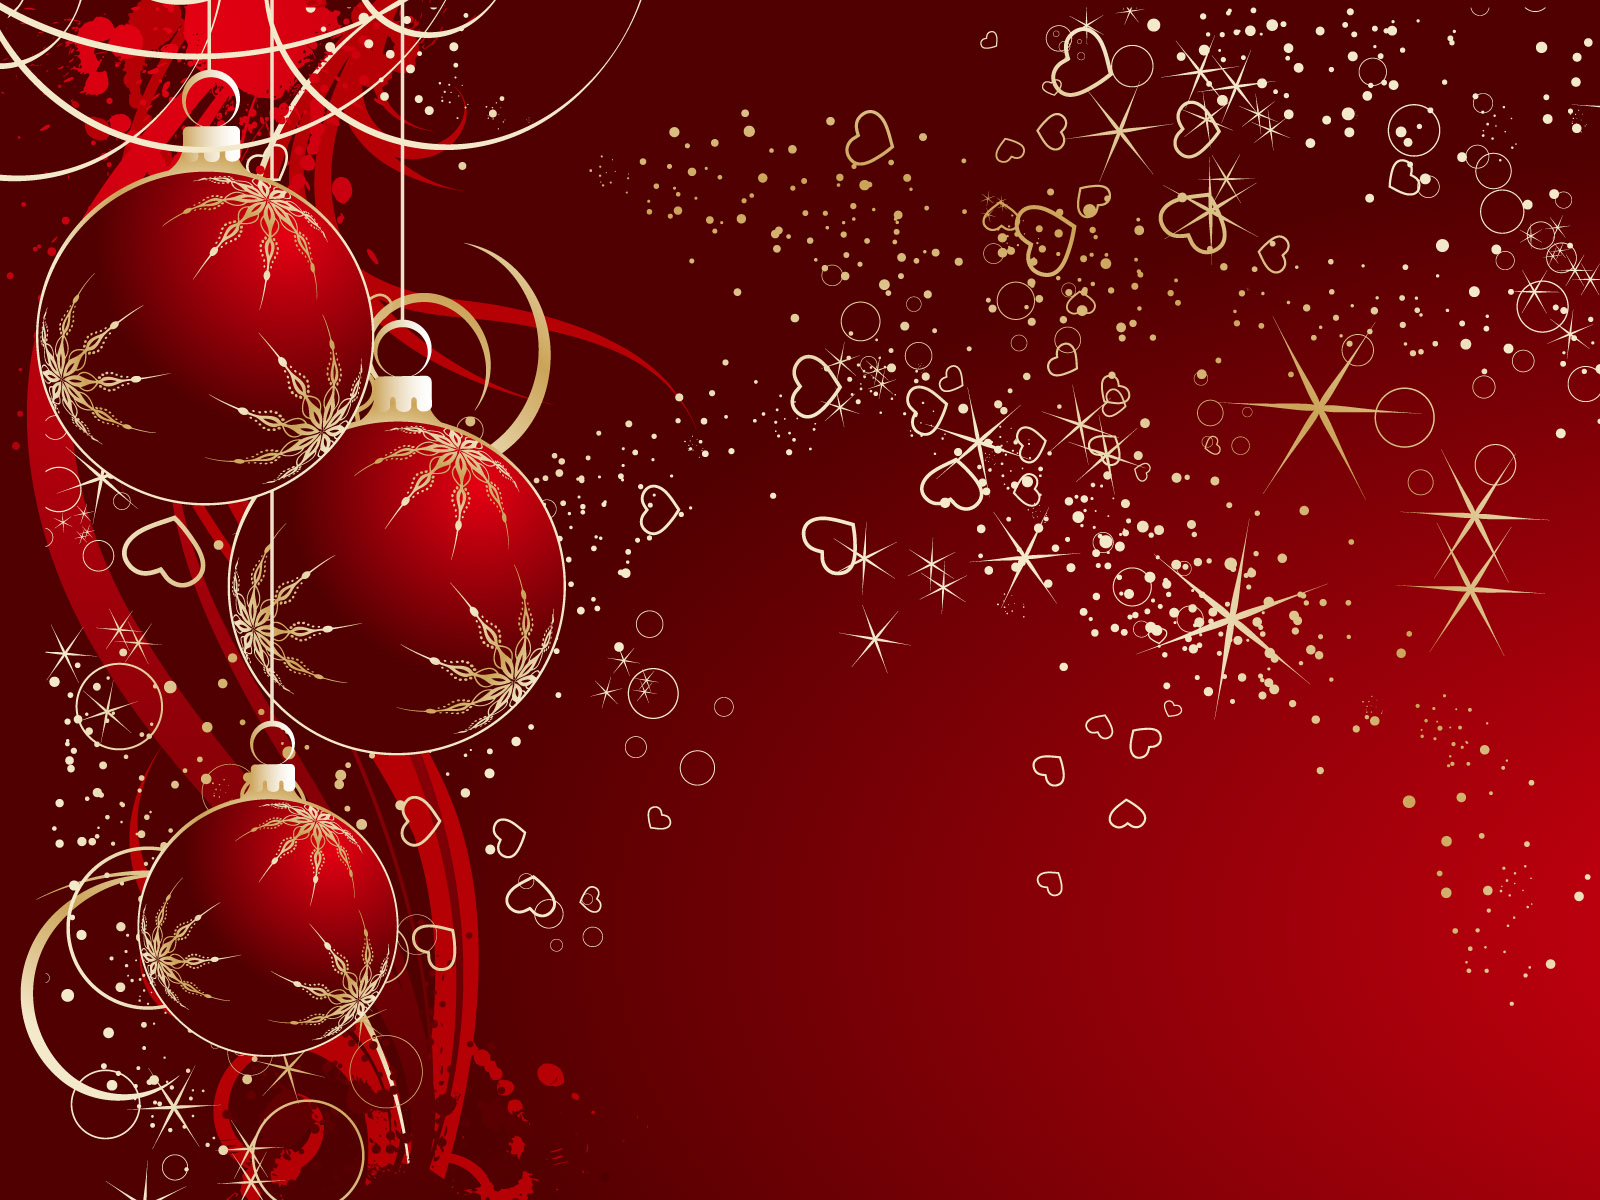 Christmas Background   PowerPoint Backgrounds for PowerPoint 1600x1200